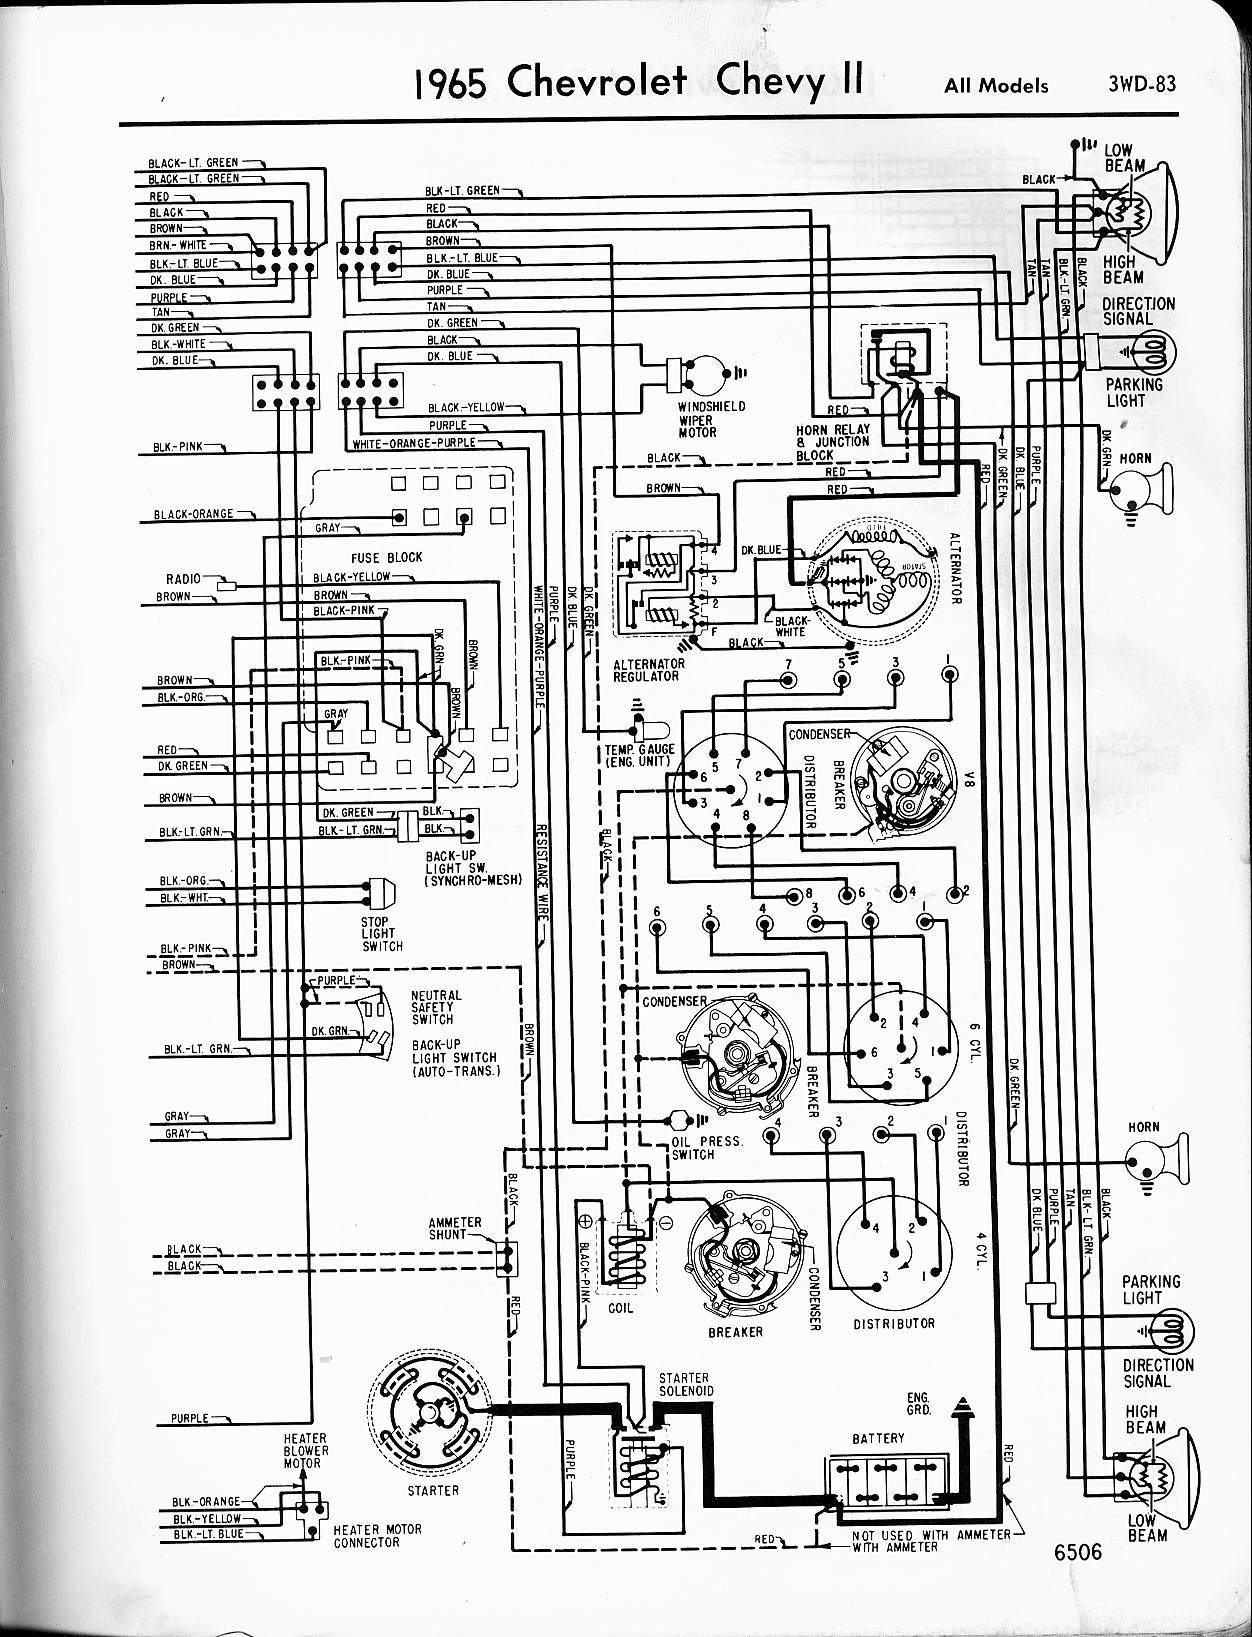 hight resolution of 65 chevy c10 wire diagram wiring diagram third level 1977 chevy truck 1966 chevy truck diagram